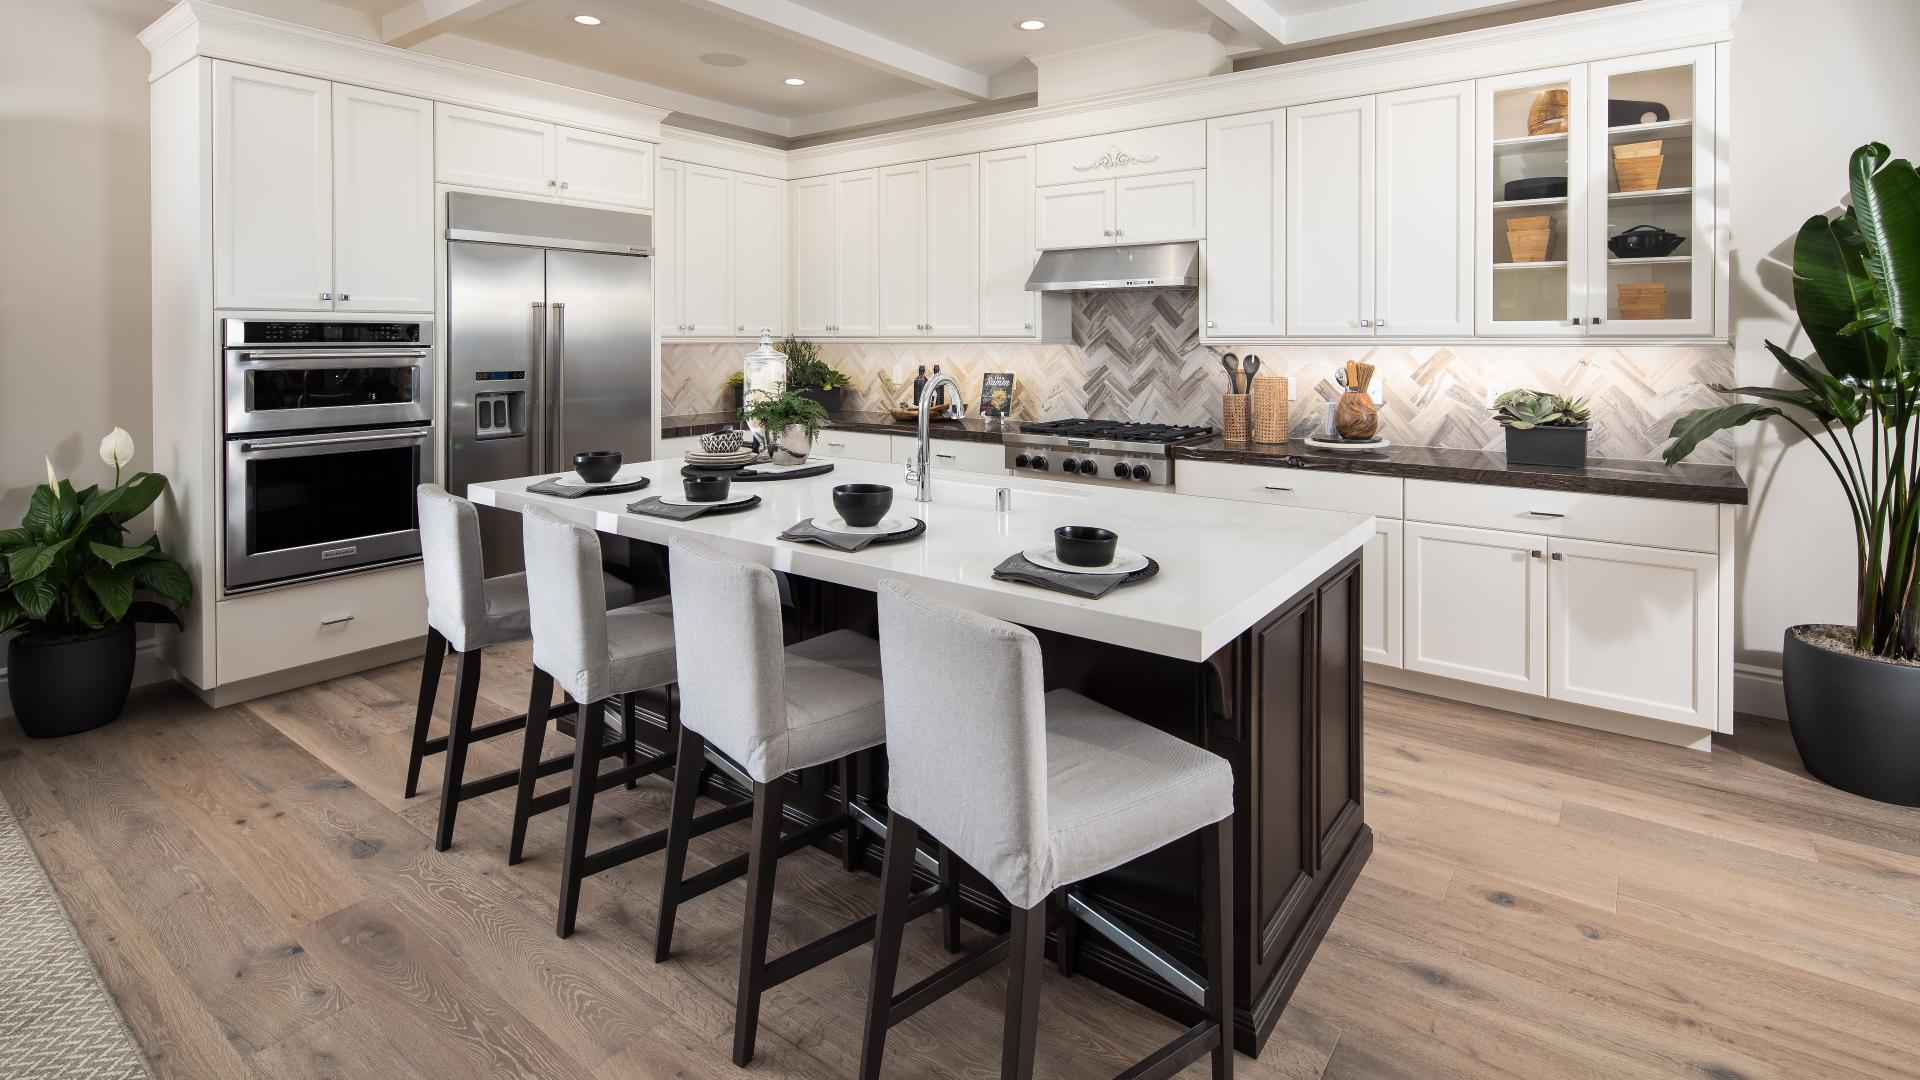 Beautiful gourmet kitchens with breakfast bars in the Arbor collection